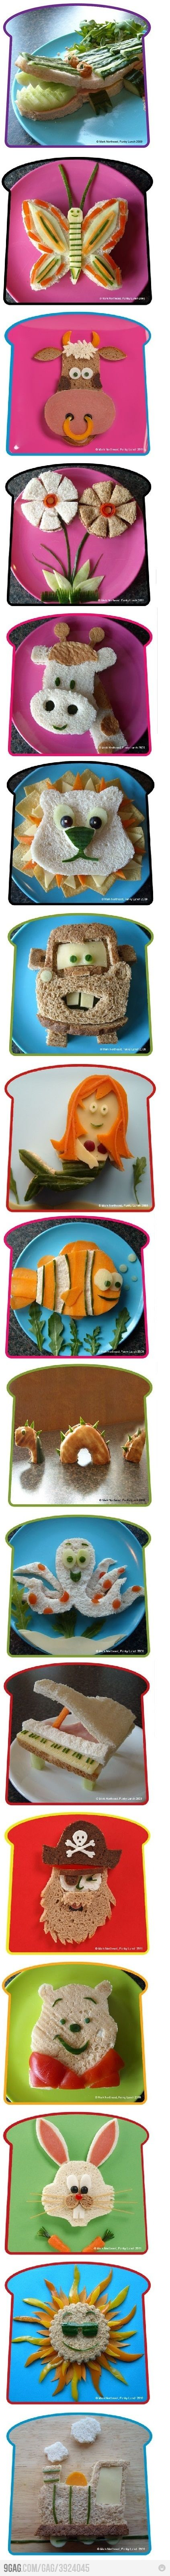 Fun sandwiches